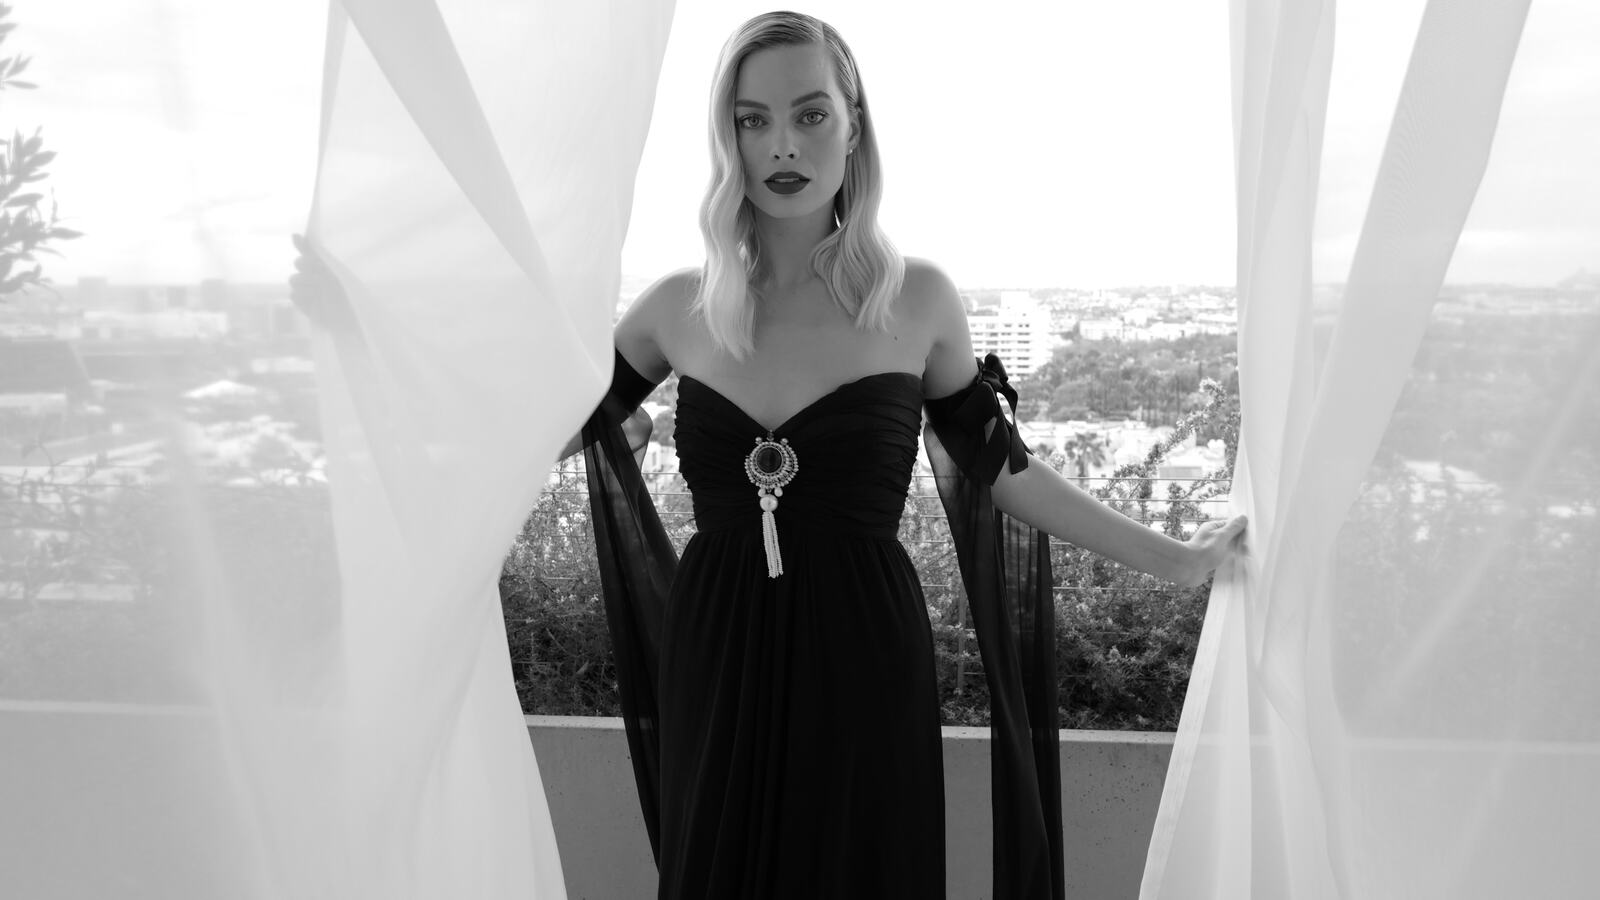 margot-robbie-vogue-uk-oscar-4k-s5.jpg